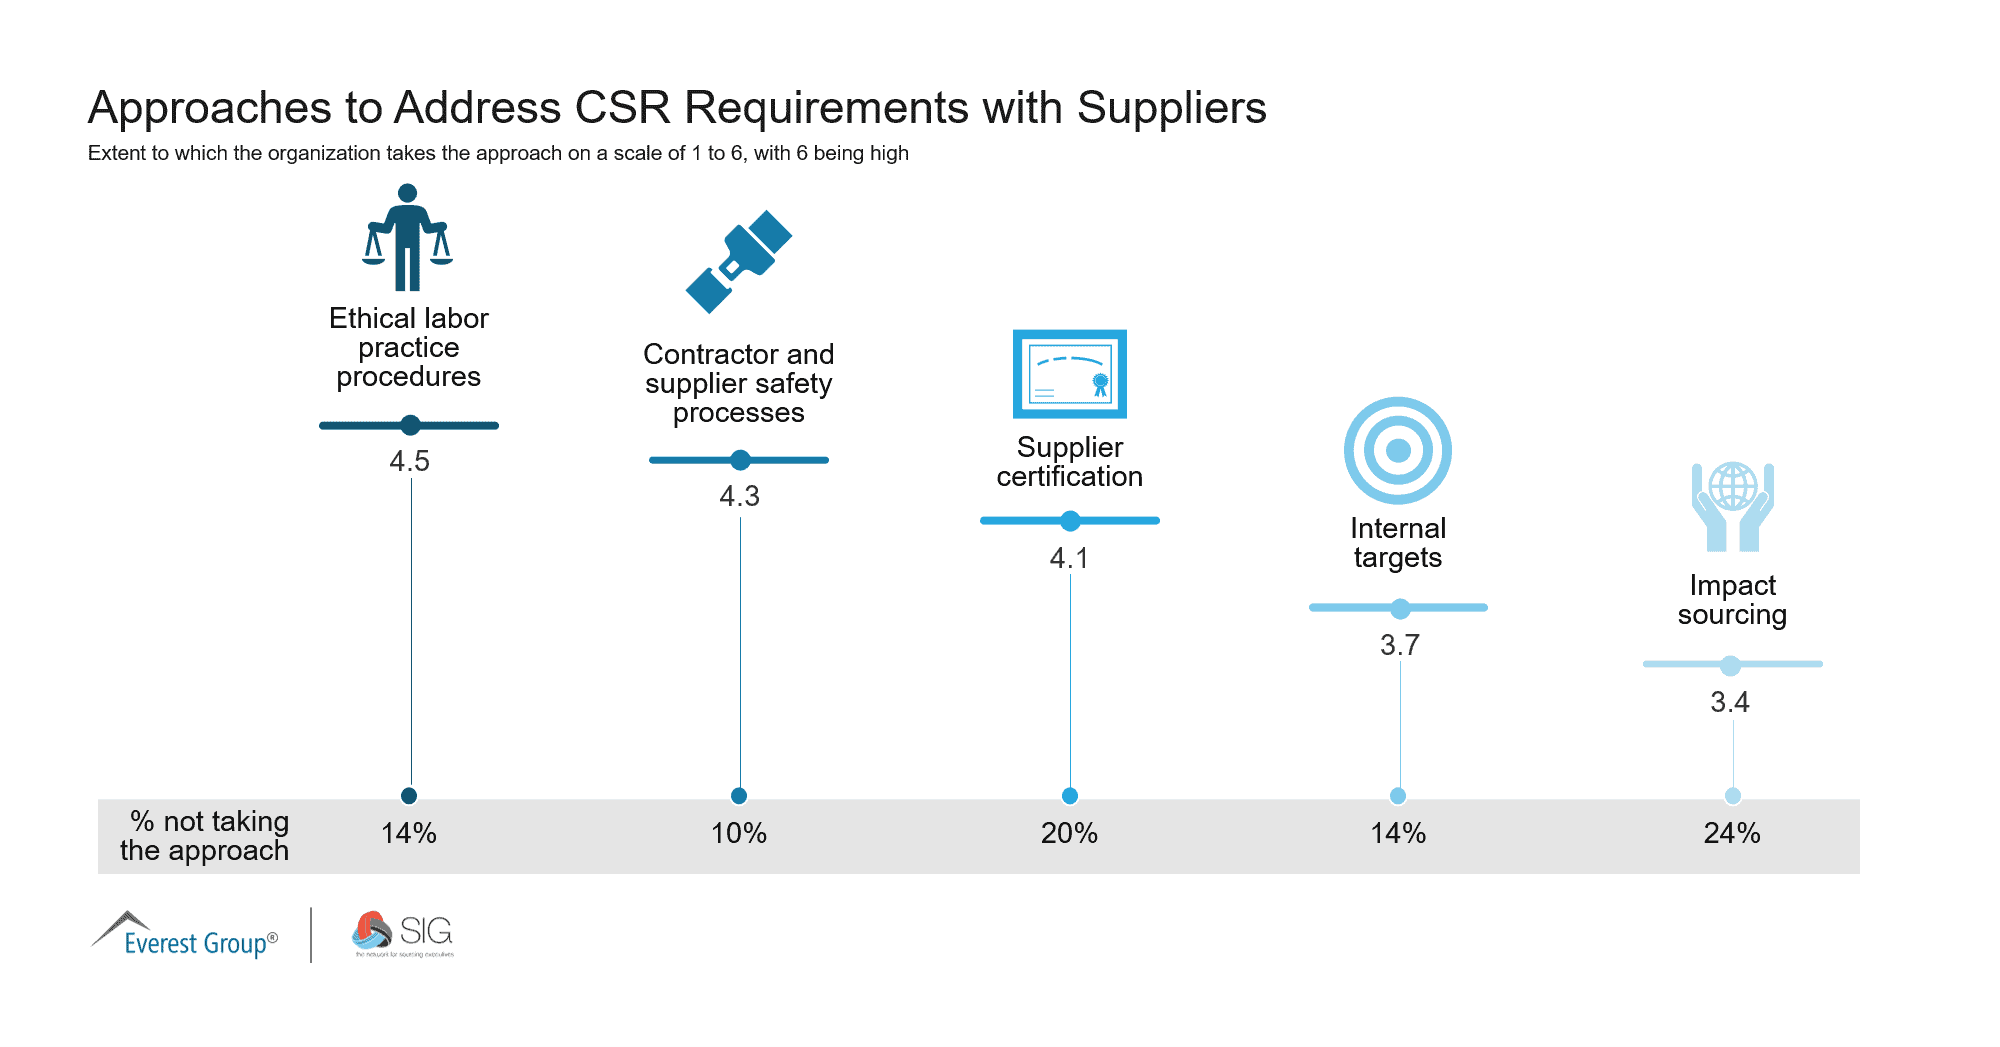 Q2 Approaches to Address CSR Requirements with Suppliers